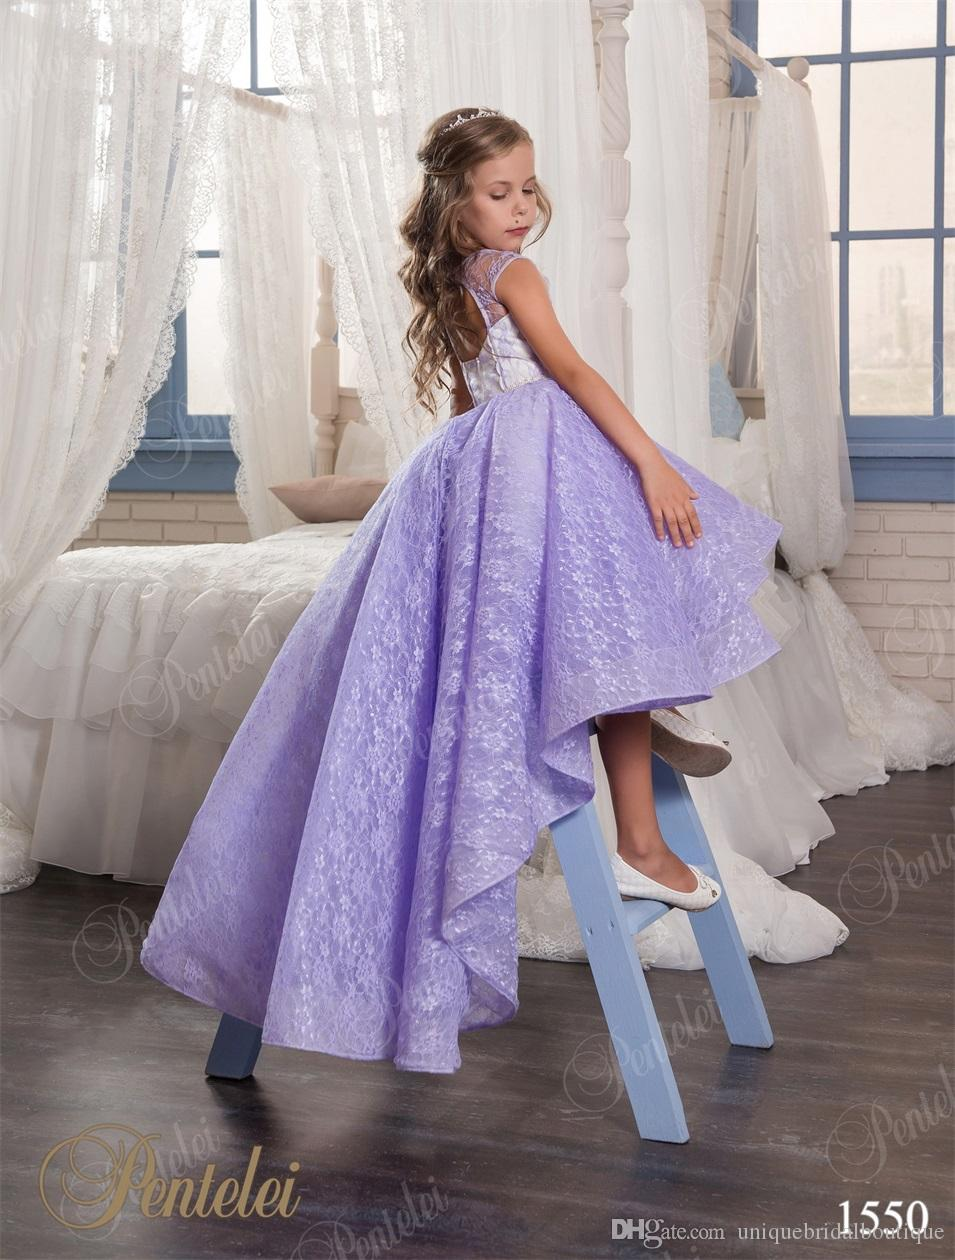 Hi Lo Flower Girls Dresses for Weddings with Crew Neck and Backless 2017 Pentelei Lilac Lace Cute Girls Prom Gowns Light Purple